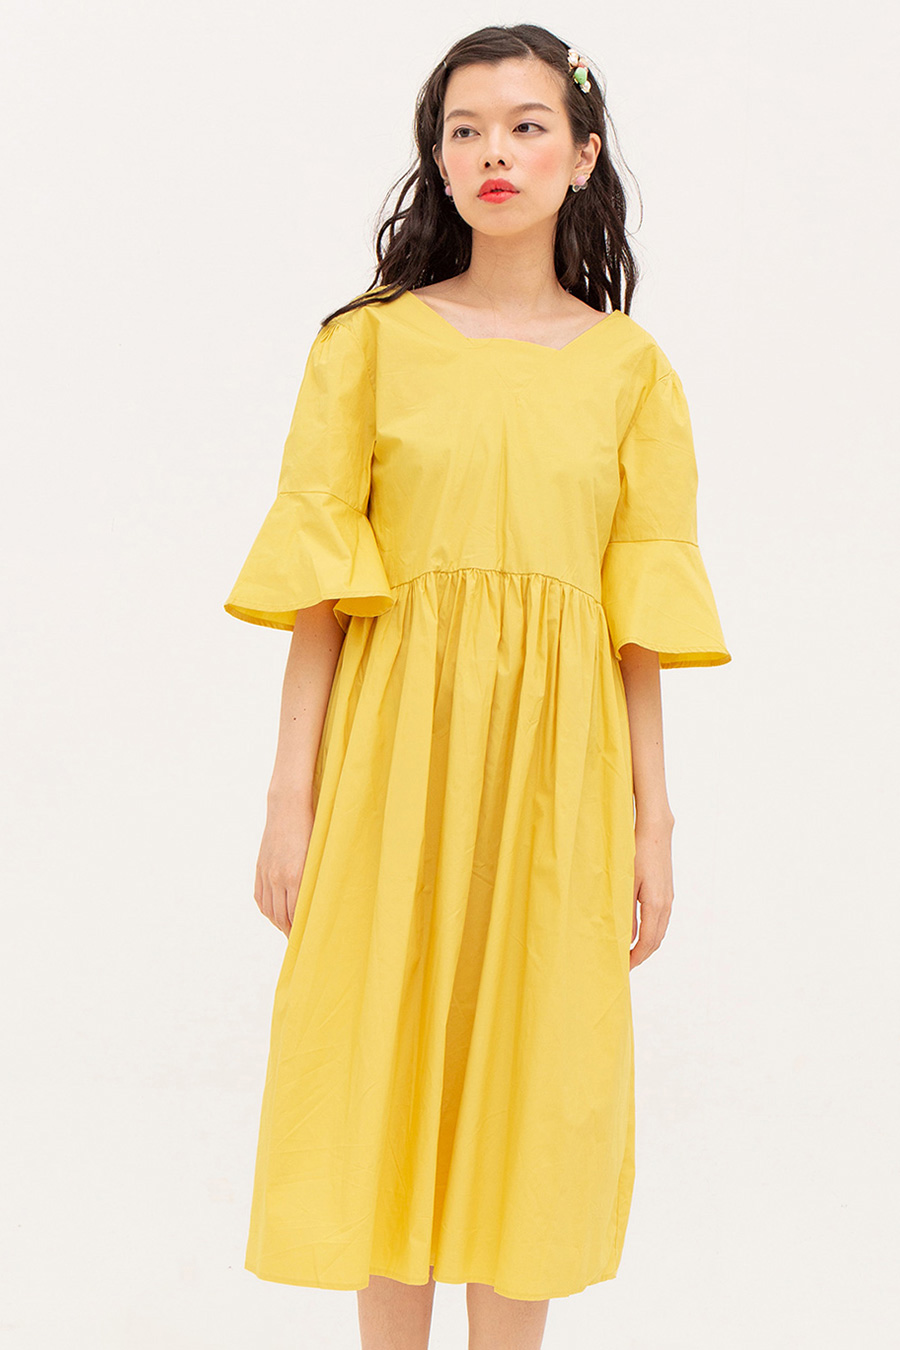 JULIEN DRESS - BUTTER